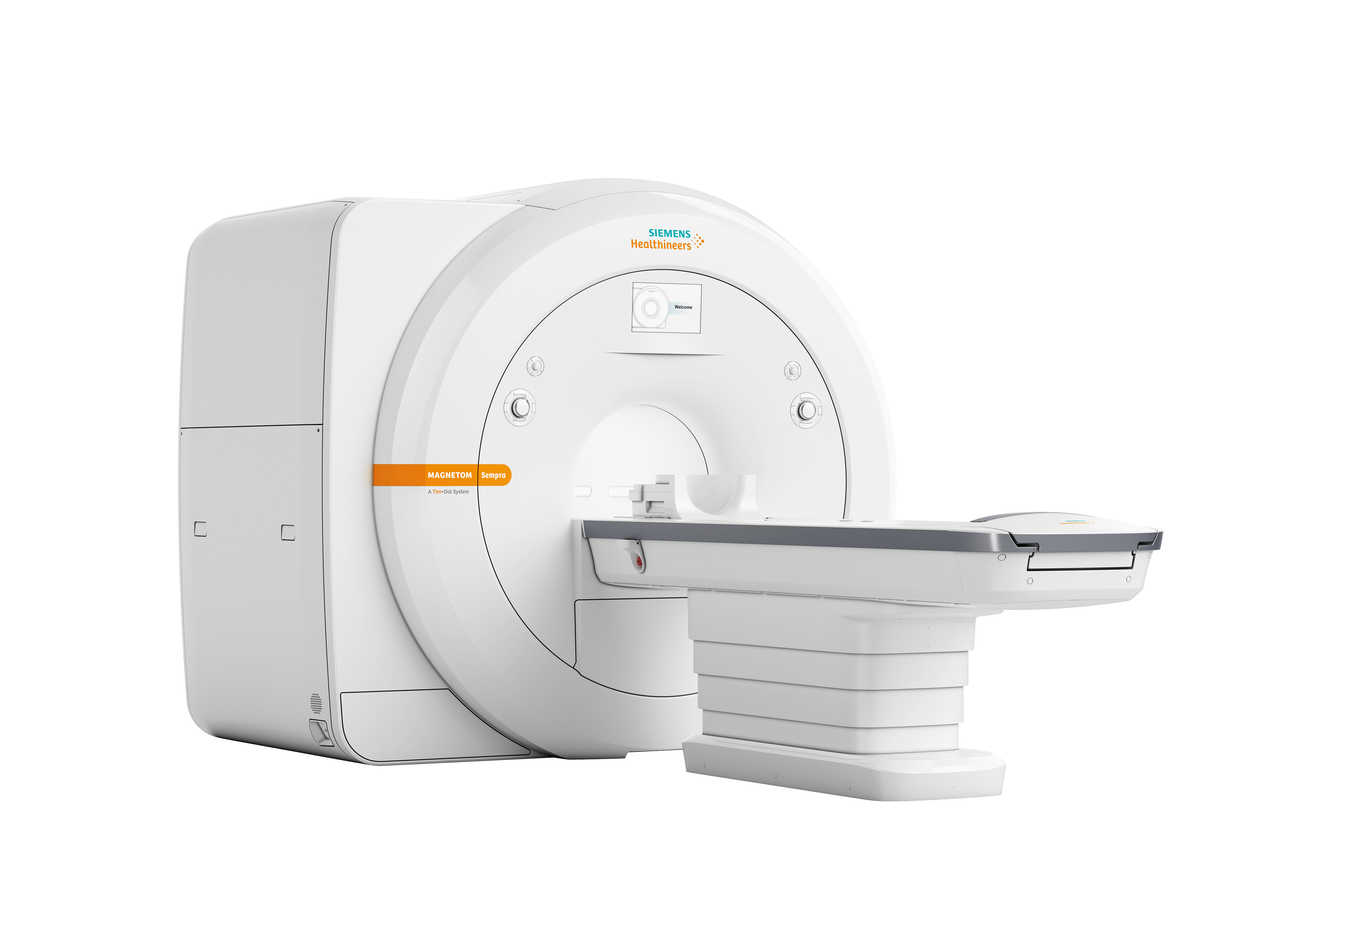 Um die Wettbewerbsfähigkeit seiner Bildgebungskunden zu stärken, präsentiert Siemens Healthineers auf dem RSNA 2016 eine neuen, besonders wirtschaftlichen Magnetresonanztomographen (MRT): Dank niedriger Betriebskosten, innovativer Technologien und eines integrierten Siemens-Healthineers-Service-Konzepts erlaubt es der 1,5-Tesla-MRT-Scanner Magnetom Sempra radiologischen Praxen und Verbünden, kleinen und mittleren Krankenhäusern trotz des wachsenden Kostendrucks in der Branche profitabel zu arbeiten und gleichzeitig mit Hilfe standardisierter Arbeitsabläufe anwenderunabhängig eine konsistente Qualität zu erzielen. In order to help its imaging customers become more competitive, Siemens Healthineers presents a new and particularly cost-efficient MRI scanner at the 2016 RSNA in Chicago. Thanks to low operating costs, innovative technologies, and an integrated Siemens Healthineers service concept, the 1.5 Tesla Magnetom Sempra1 MRI scanner will allow radiological practices and groups, as well as small and medium-sized hospitals to work profitably despite growing cost pressure in the industry. Additionally, its standardized workflows will help institutions achieve consistent, user-independent quality. 1 510(k) pending.